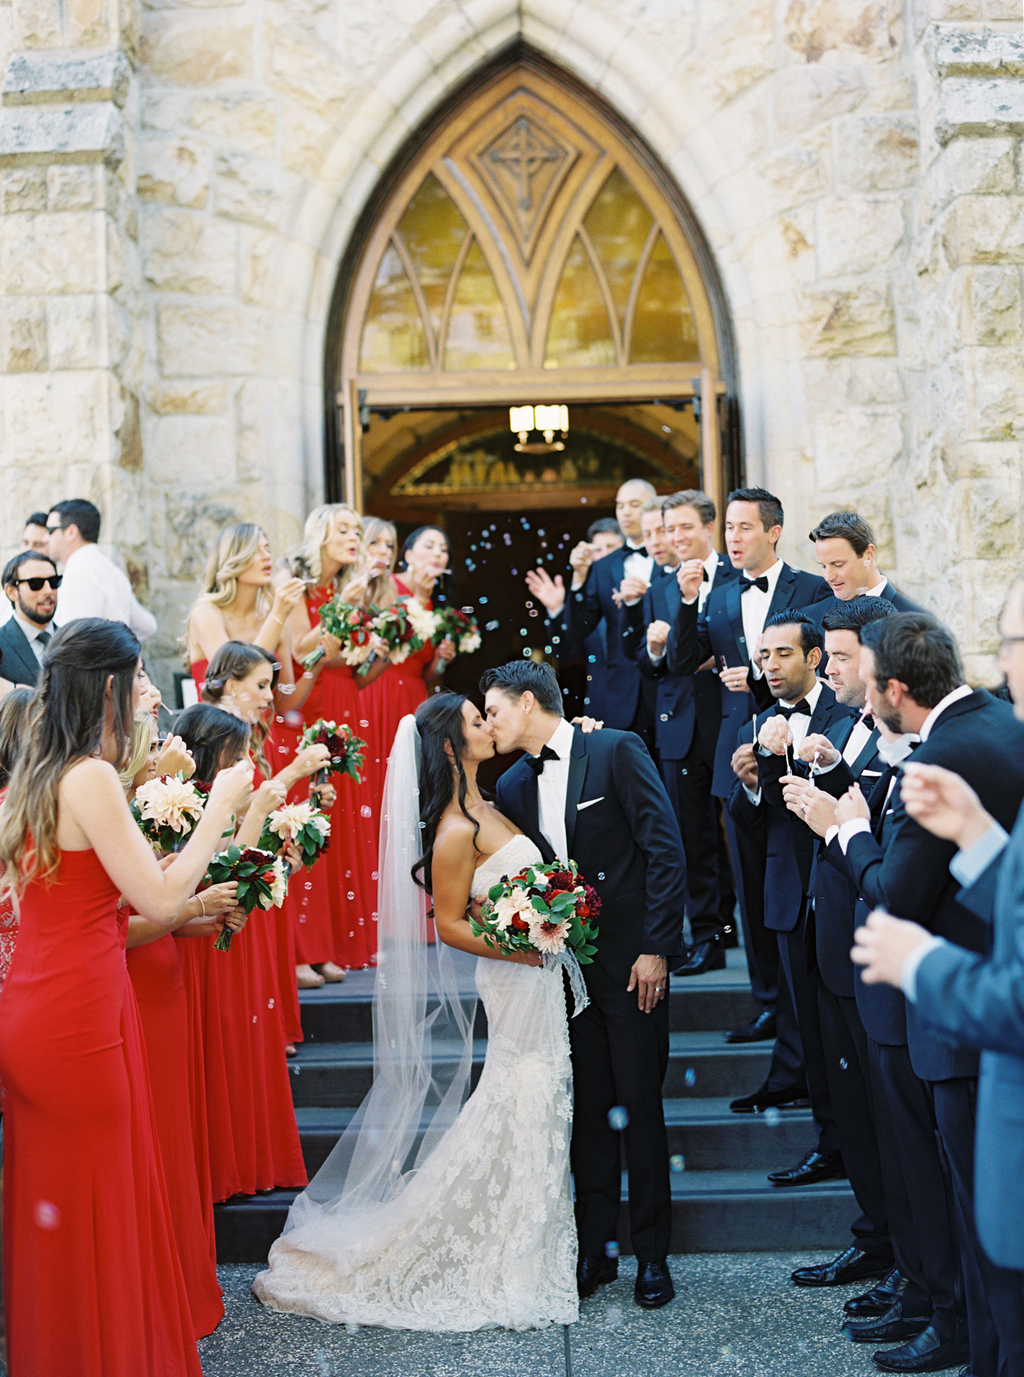 surrounded by their friends, a bride and groom kiss in front of a church in Napa Valley, while bubbles float in the air.